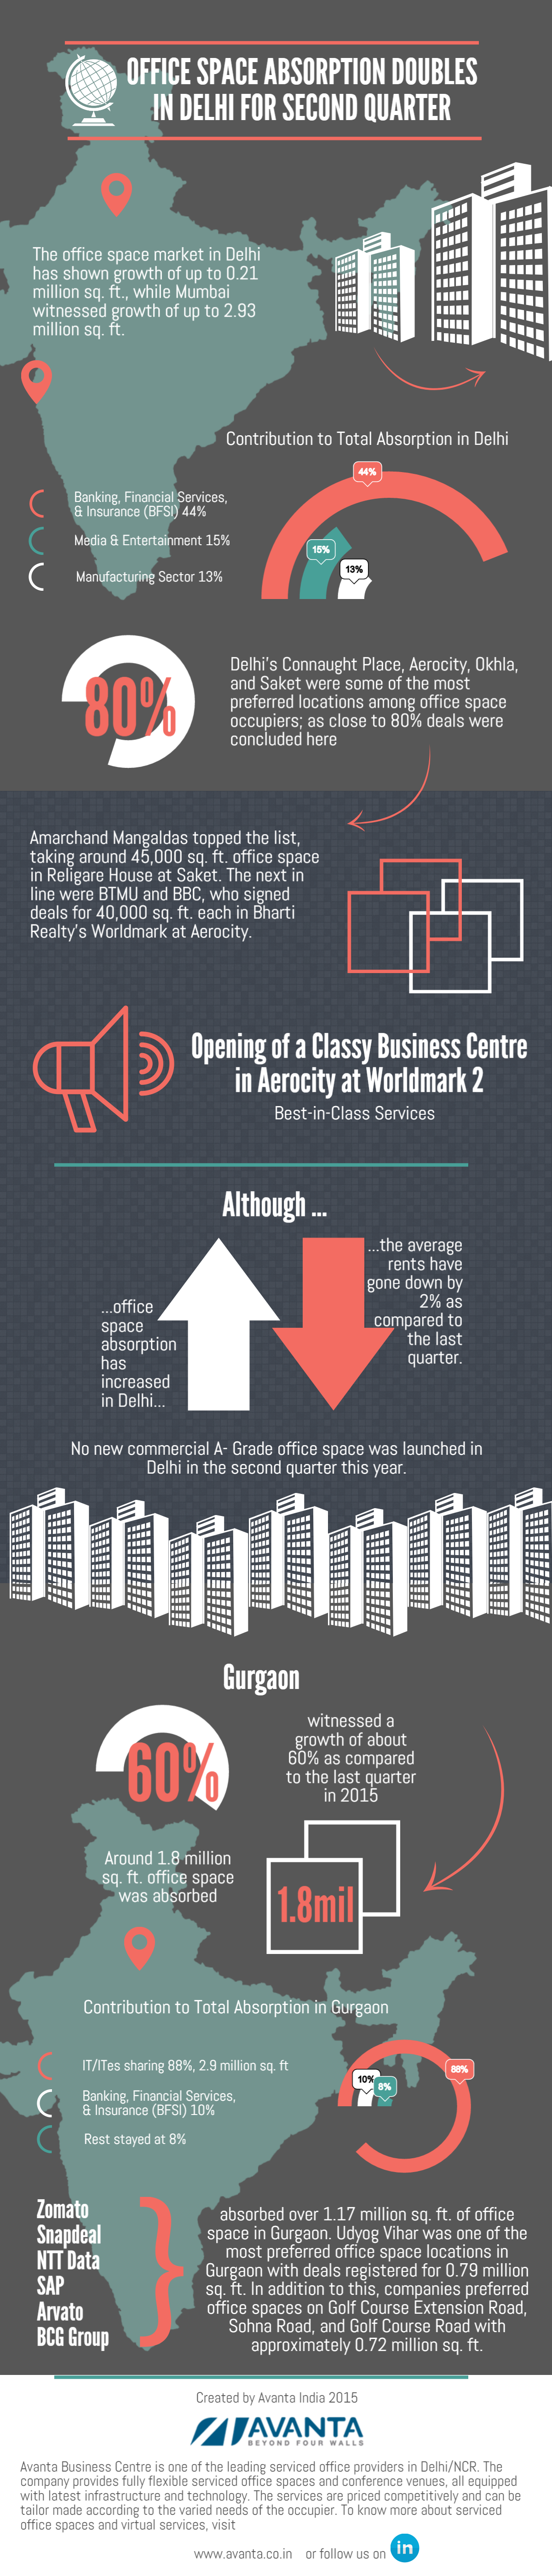 Infographic: Office Space Absorption Doubles in Delhi for Second Quarter